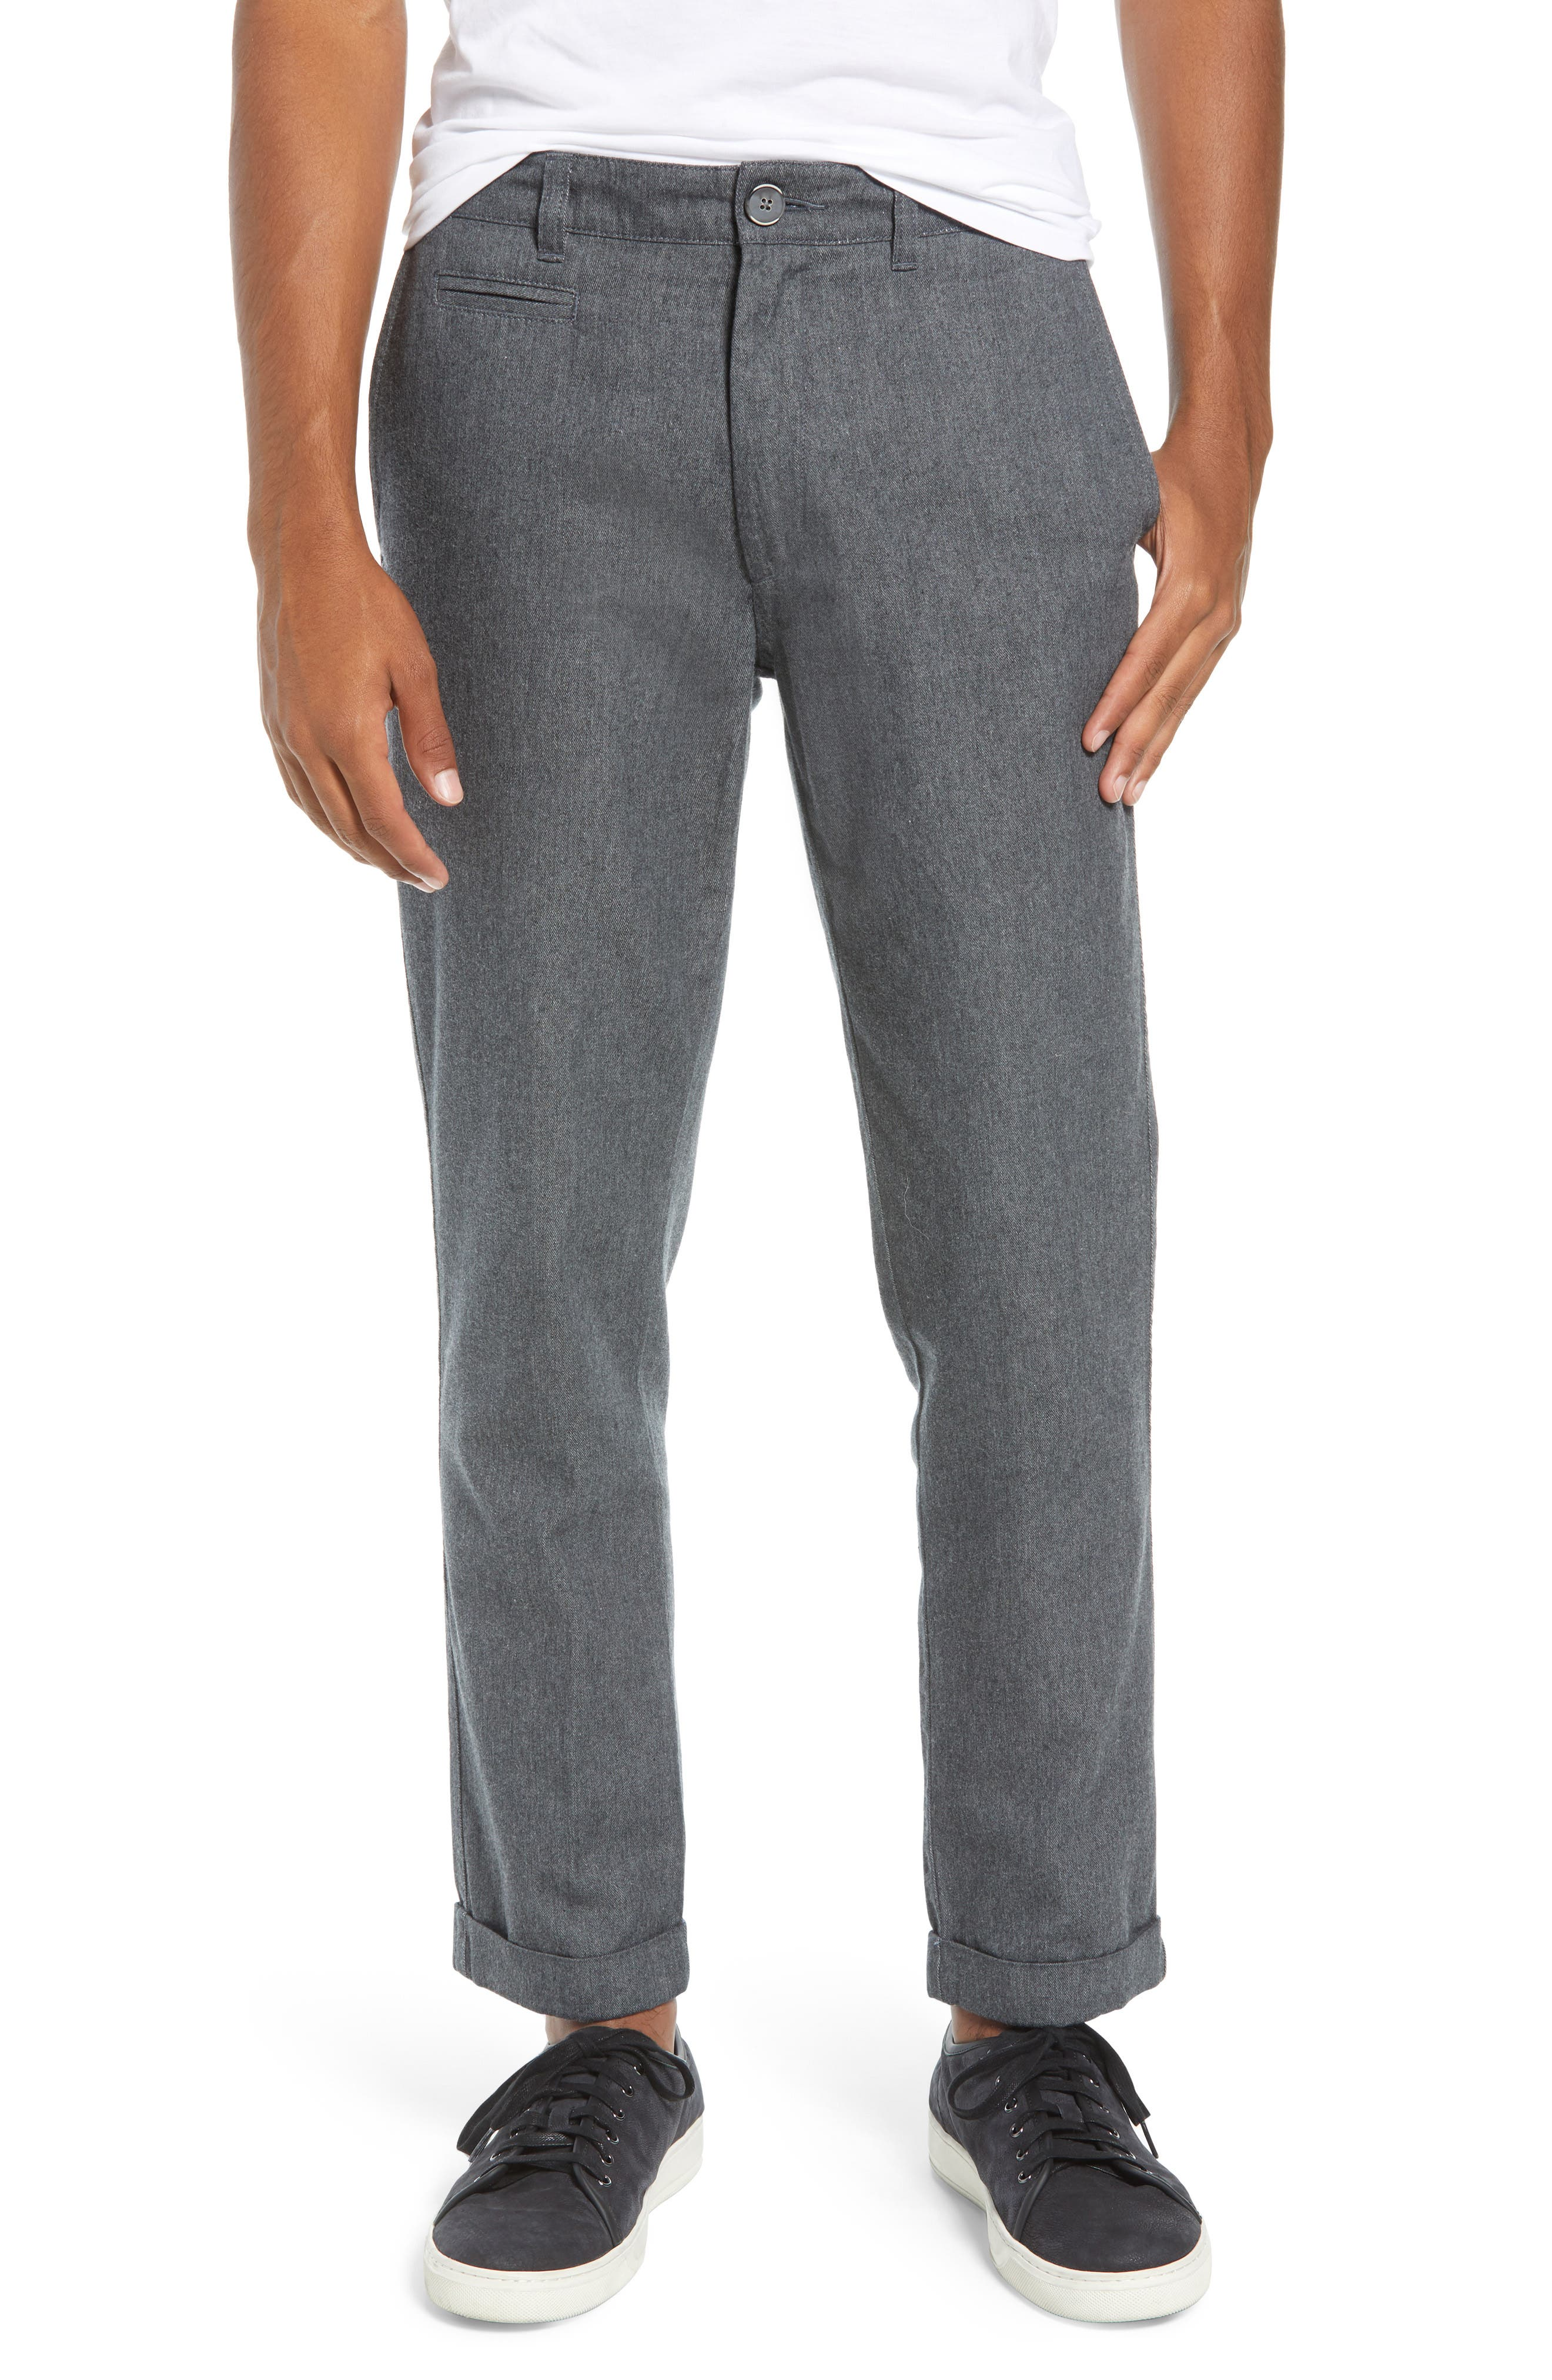 LIFE/AFTER/DENIM Bixi Slim Cotton Twill Trousers, Main, color, HEATHER CHARCOAL